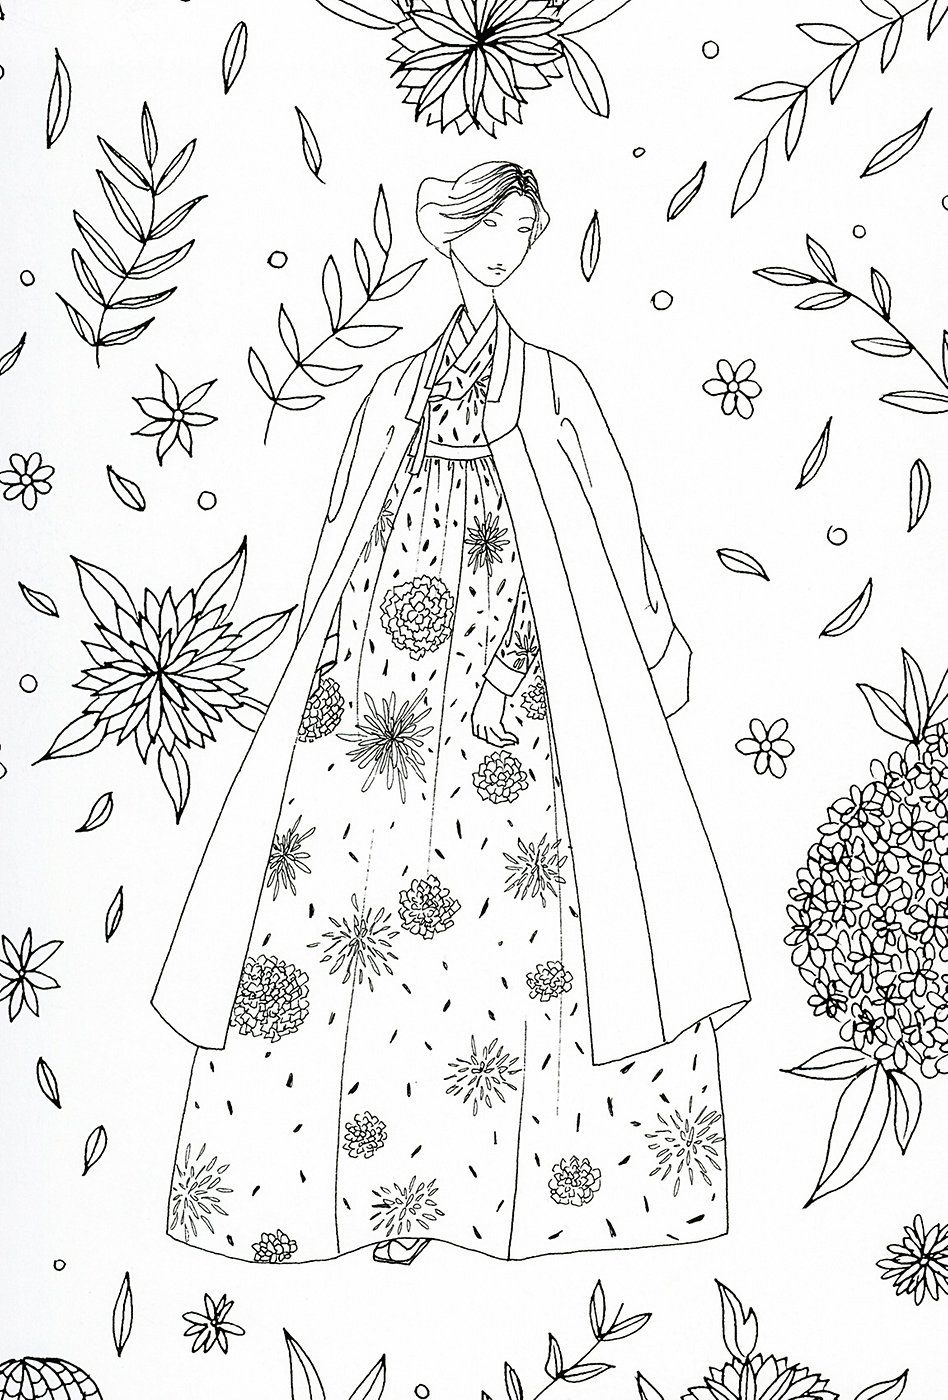 adult coloring page : Japan | ART | Pinterest | Dibujos, Bordado and ...